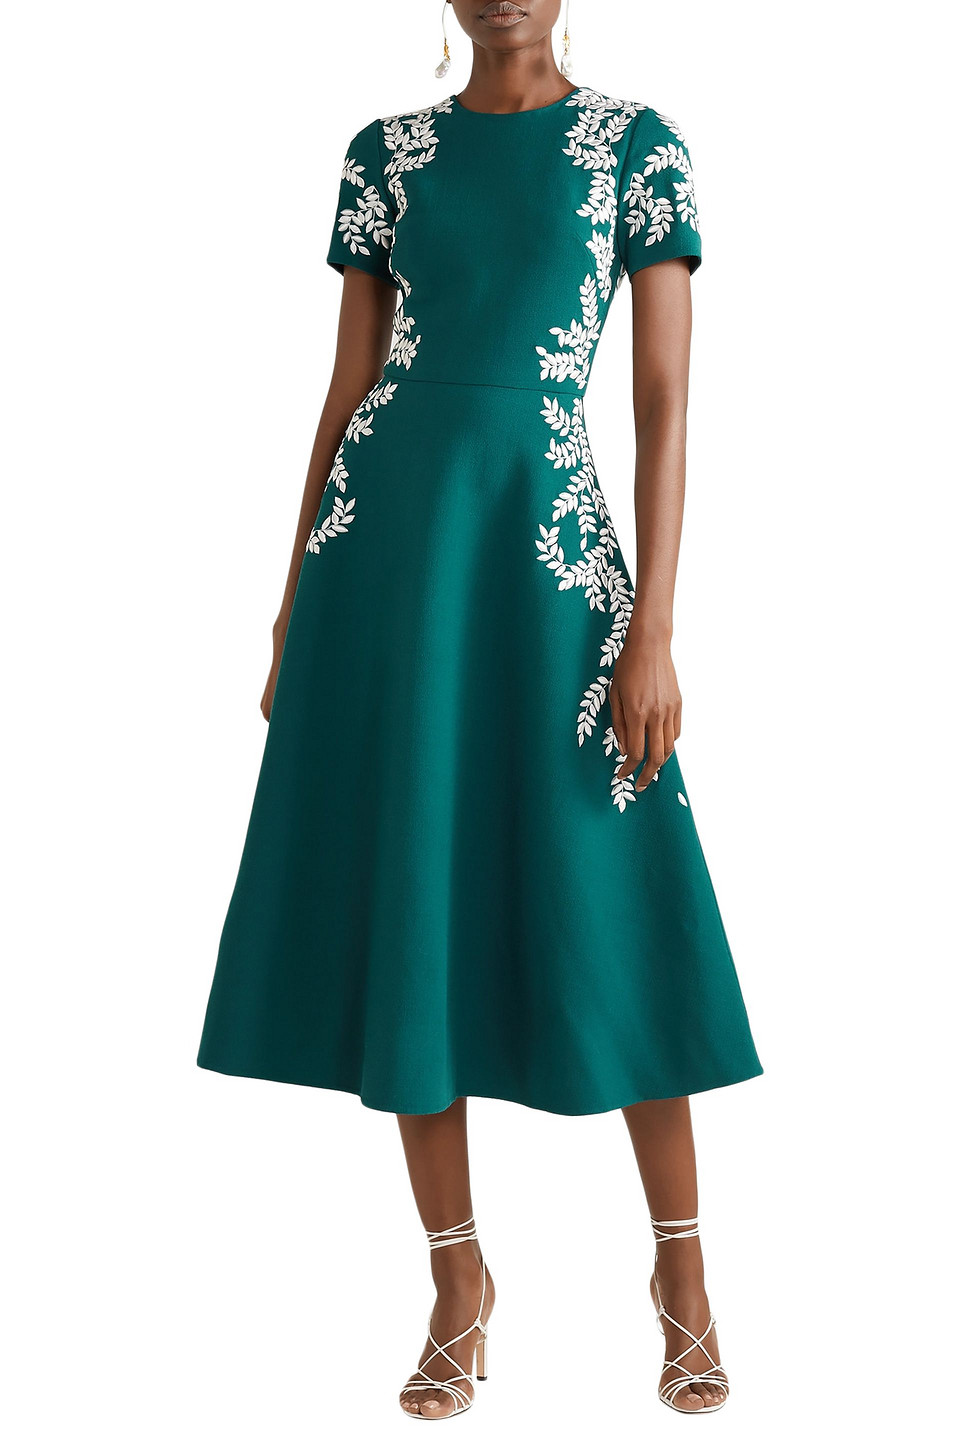 Oscar De La Renta | Oscar De La Renta Woman Embroidered Wool-blend Crepe Midi Dress Emerald | Clouty